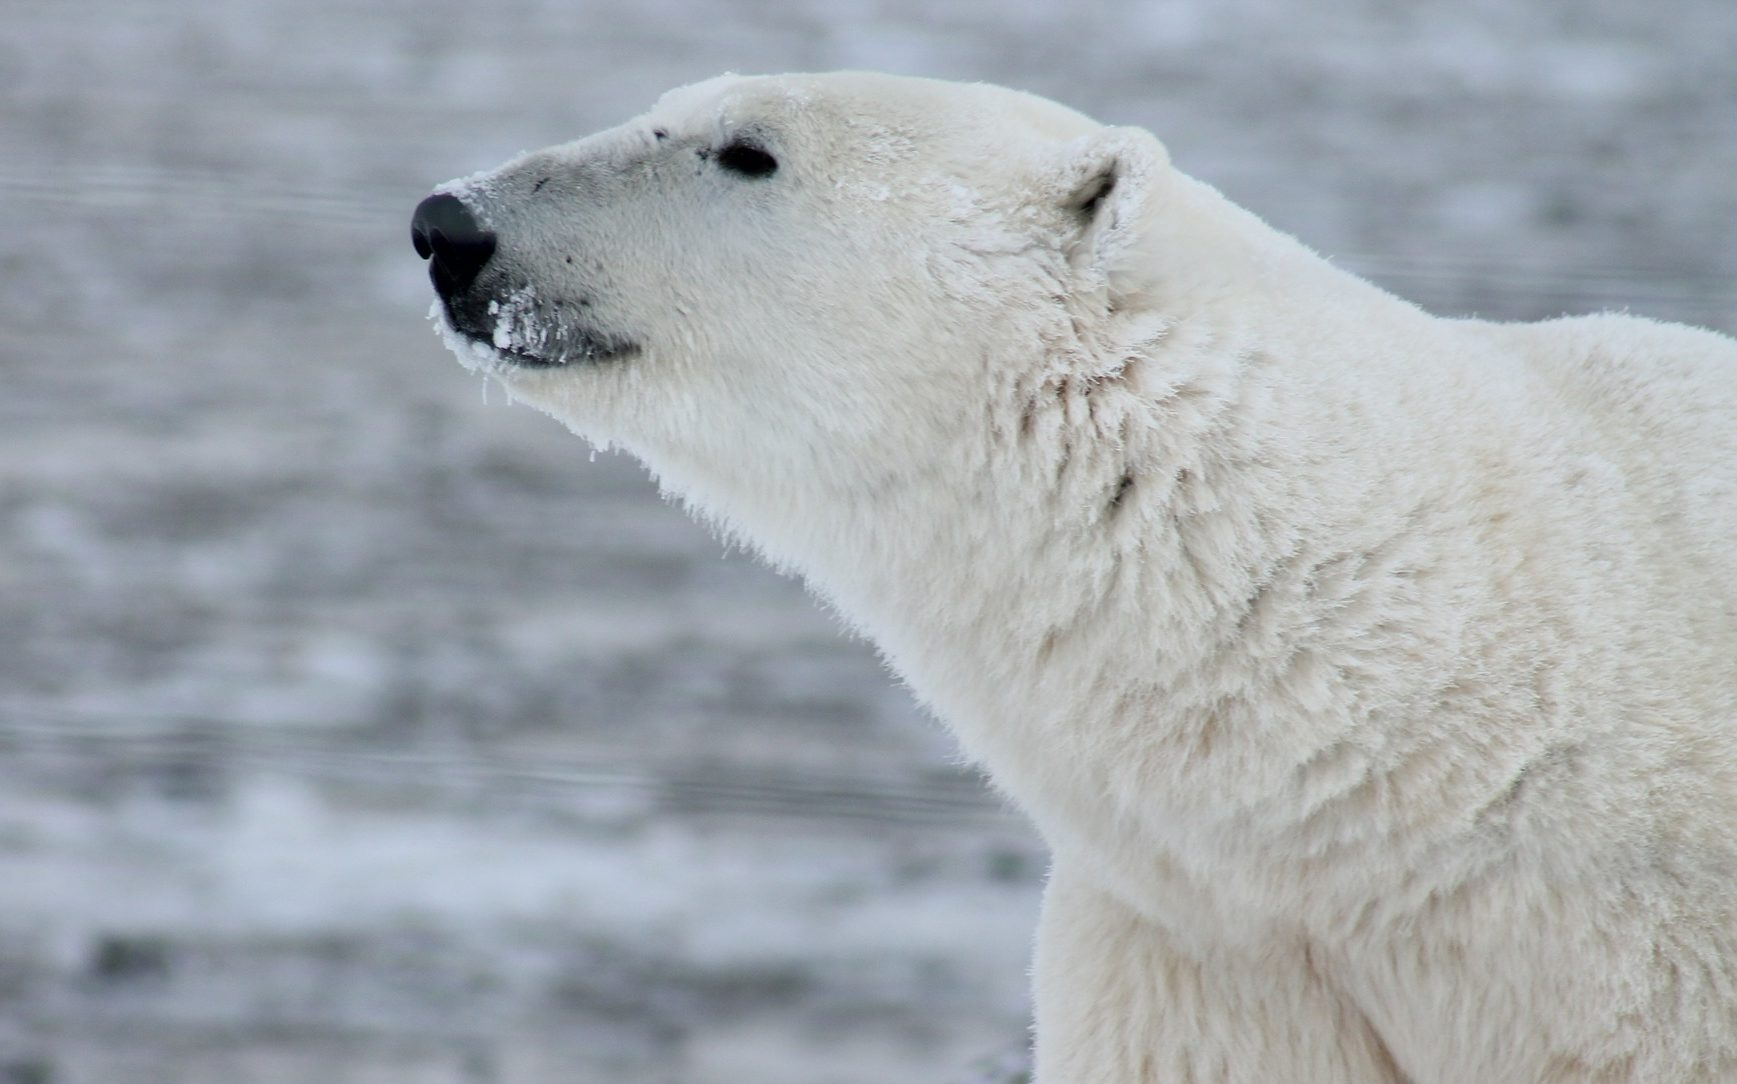 Polar bear with nose in air